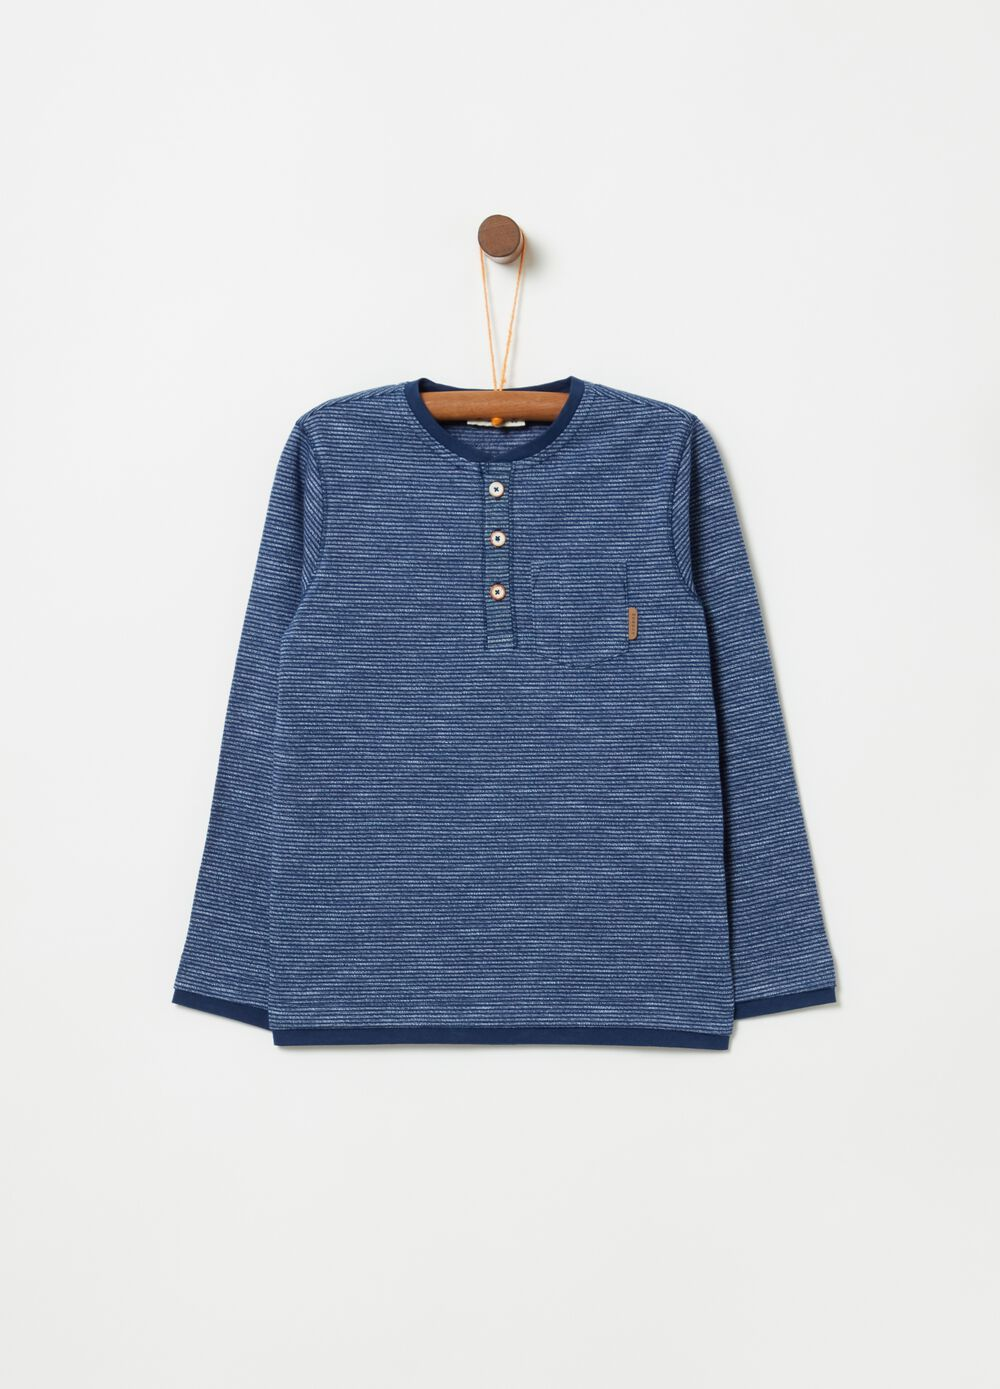 Long-sleeved T-shirt with round neck and stripes